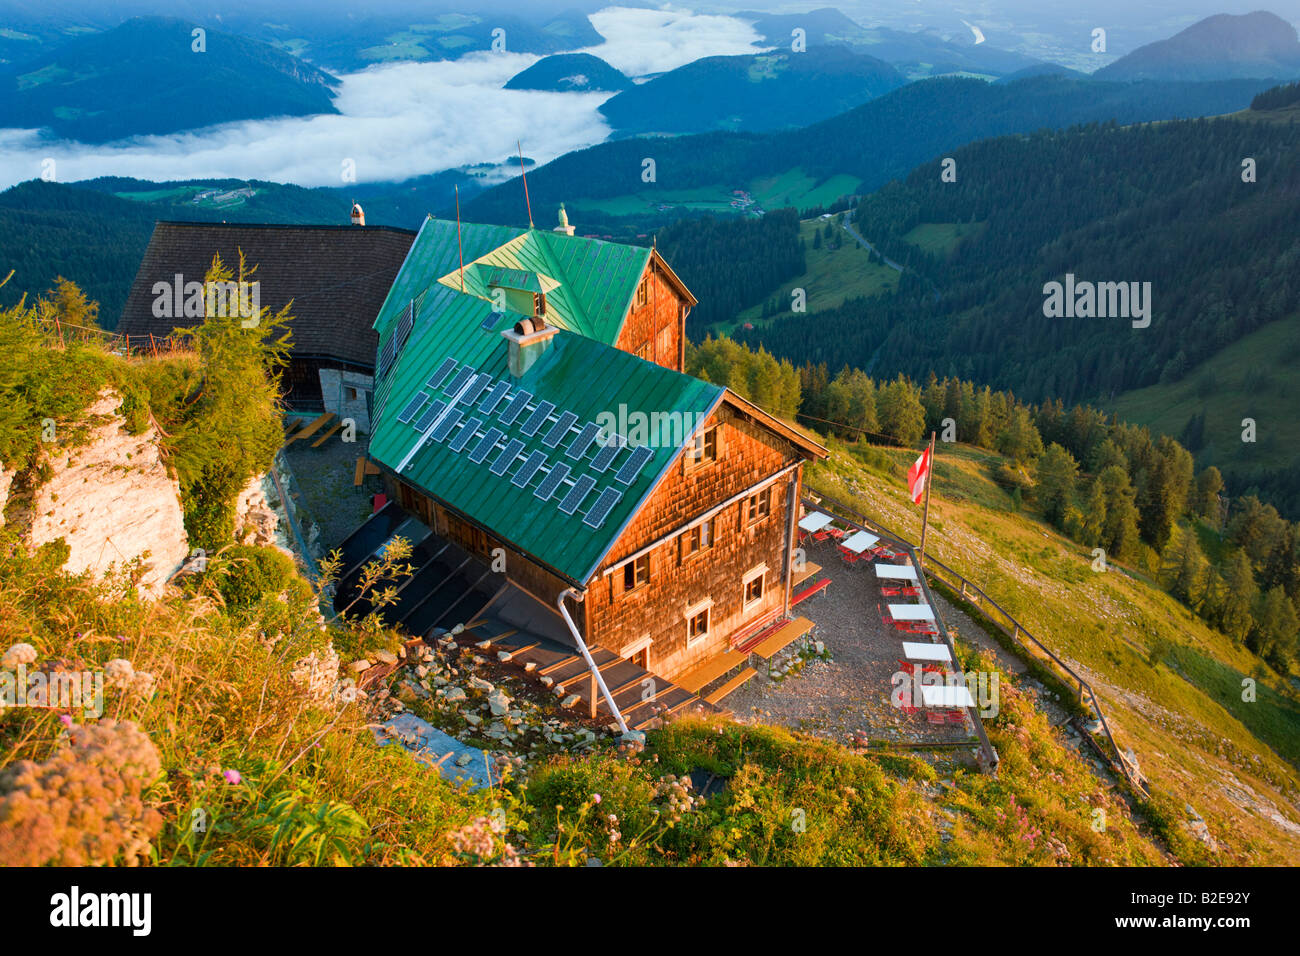 High angle view of hotel on mountain, Purtschellerhaus, Hoher Goell, Tennengau, Berchtesgaden Alps, Bavaria, Germany Stock Photo